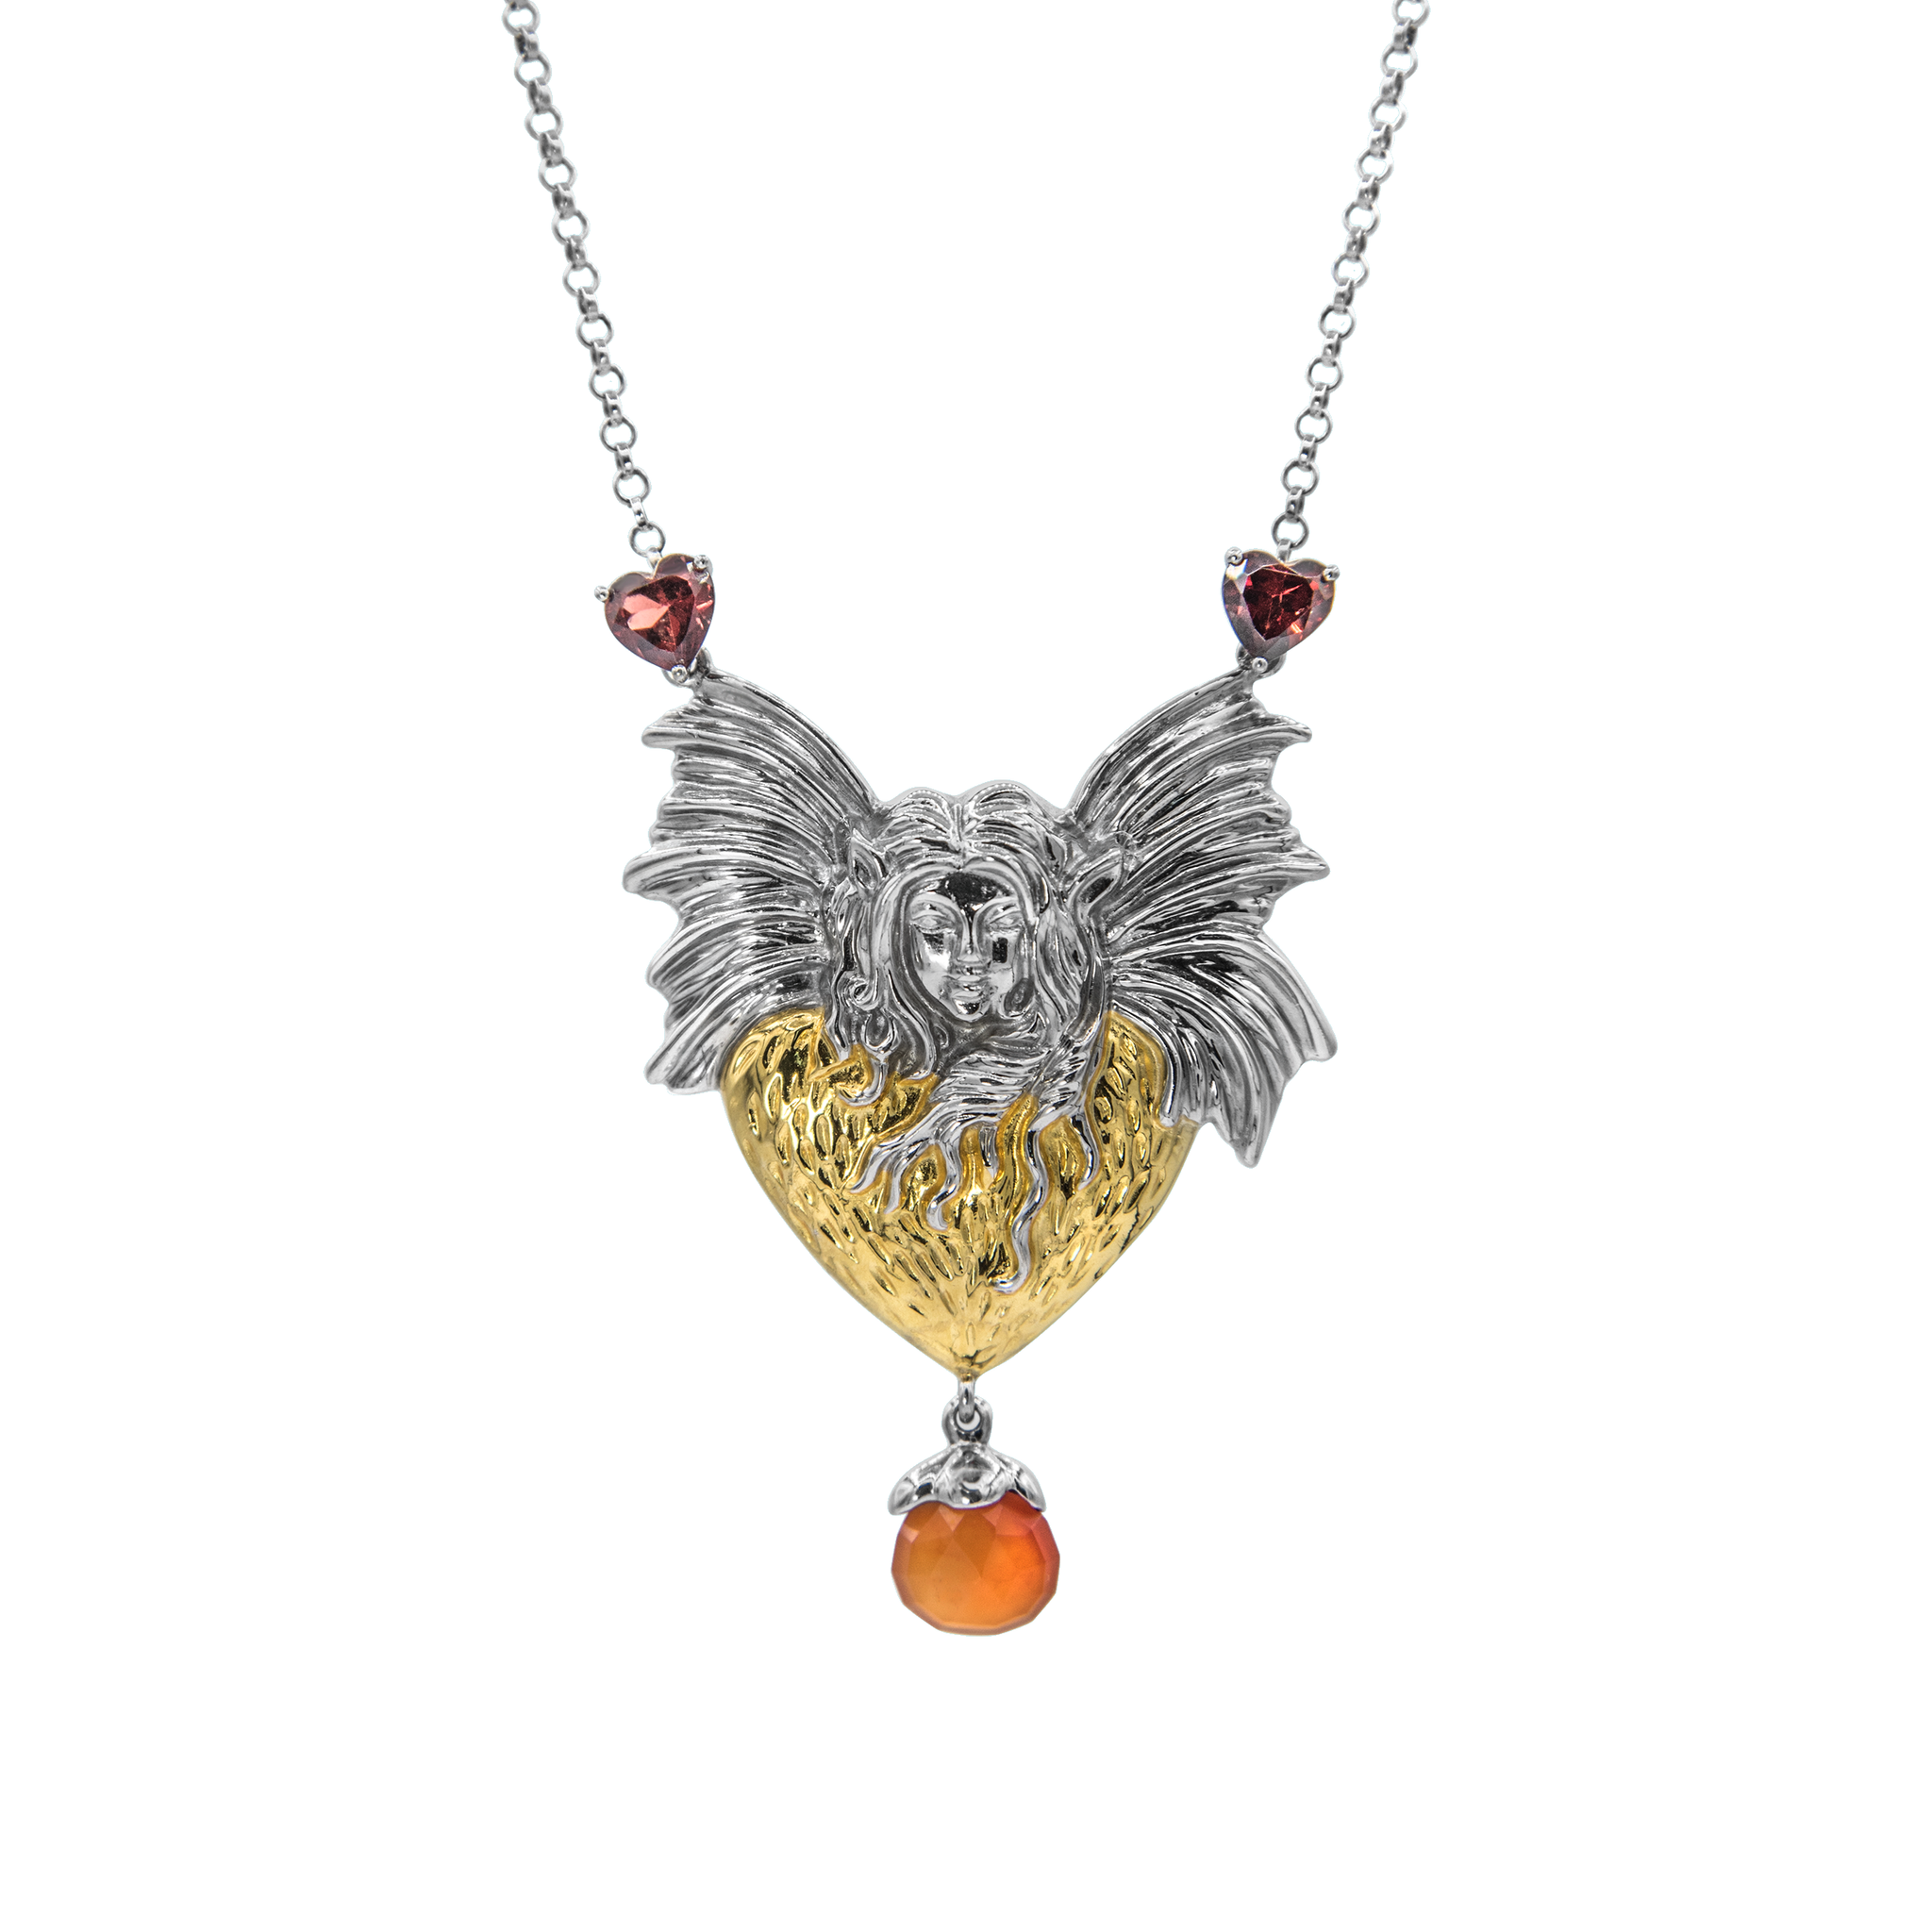 fairy large necklace everley joy fine night jewellers products morning london good goodnight vermeil